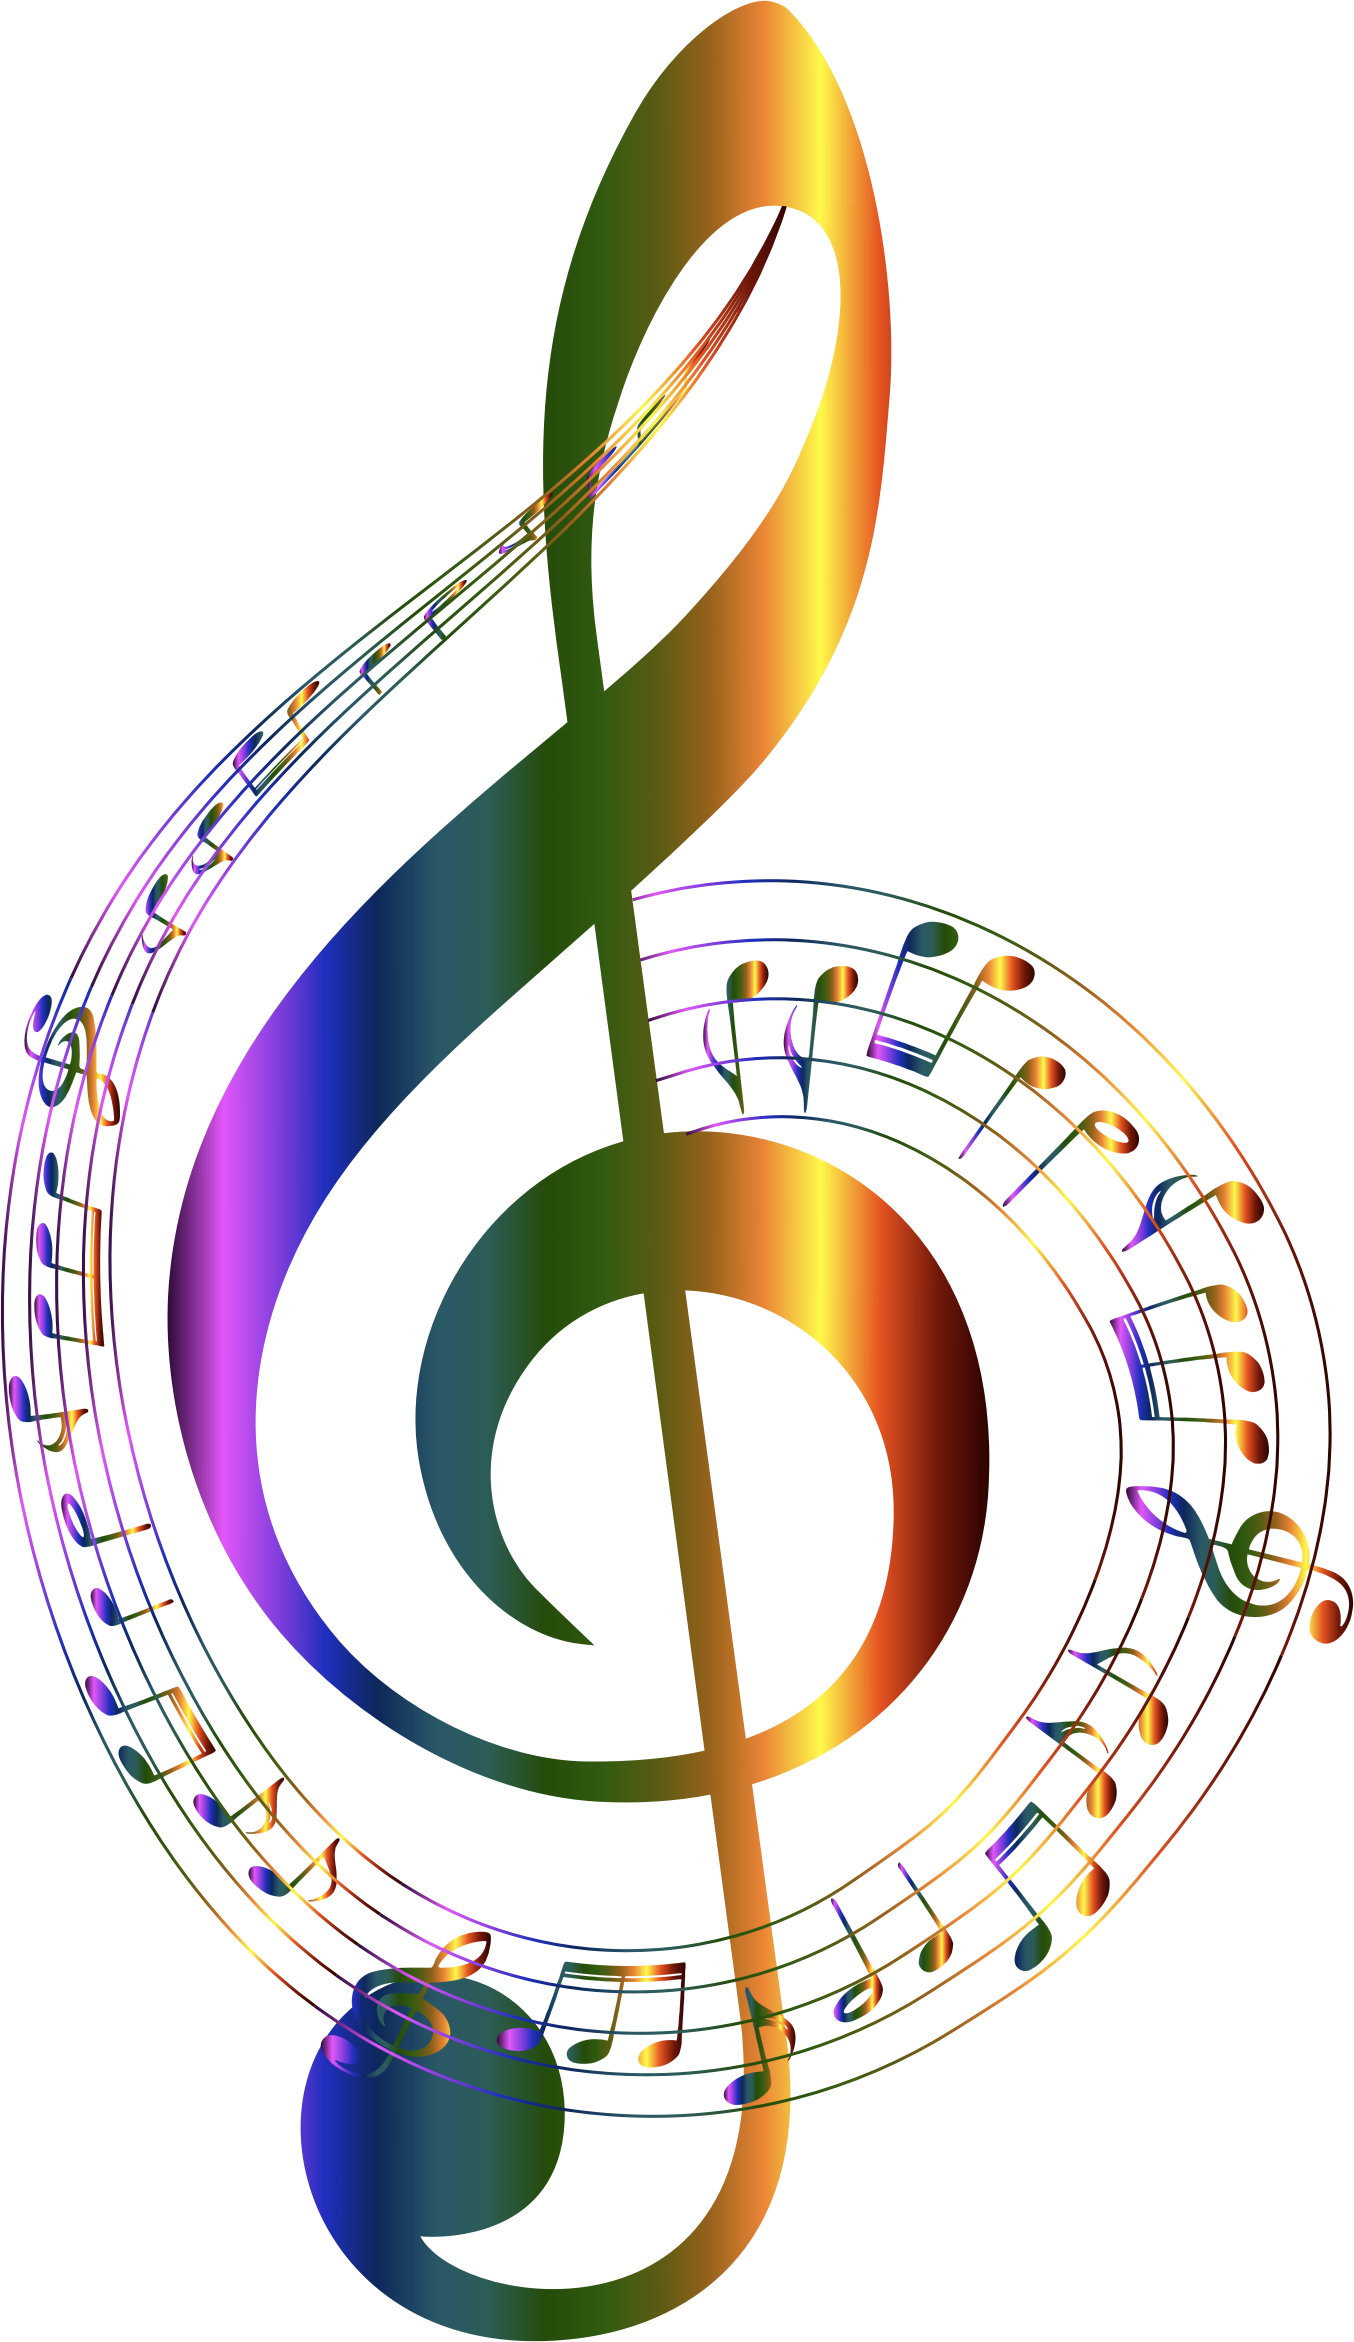 Chromatic Musical Notes Typography No Background by GDJ